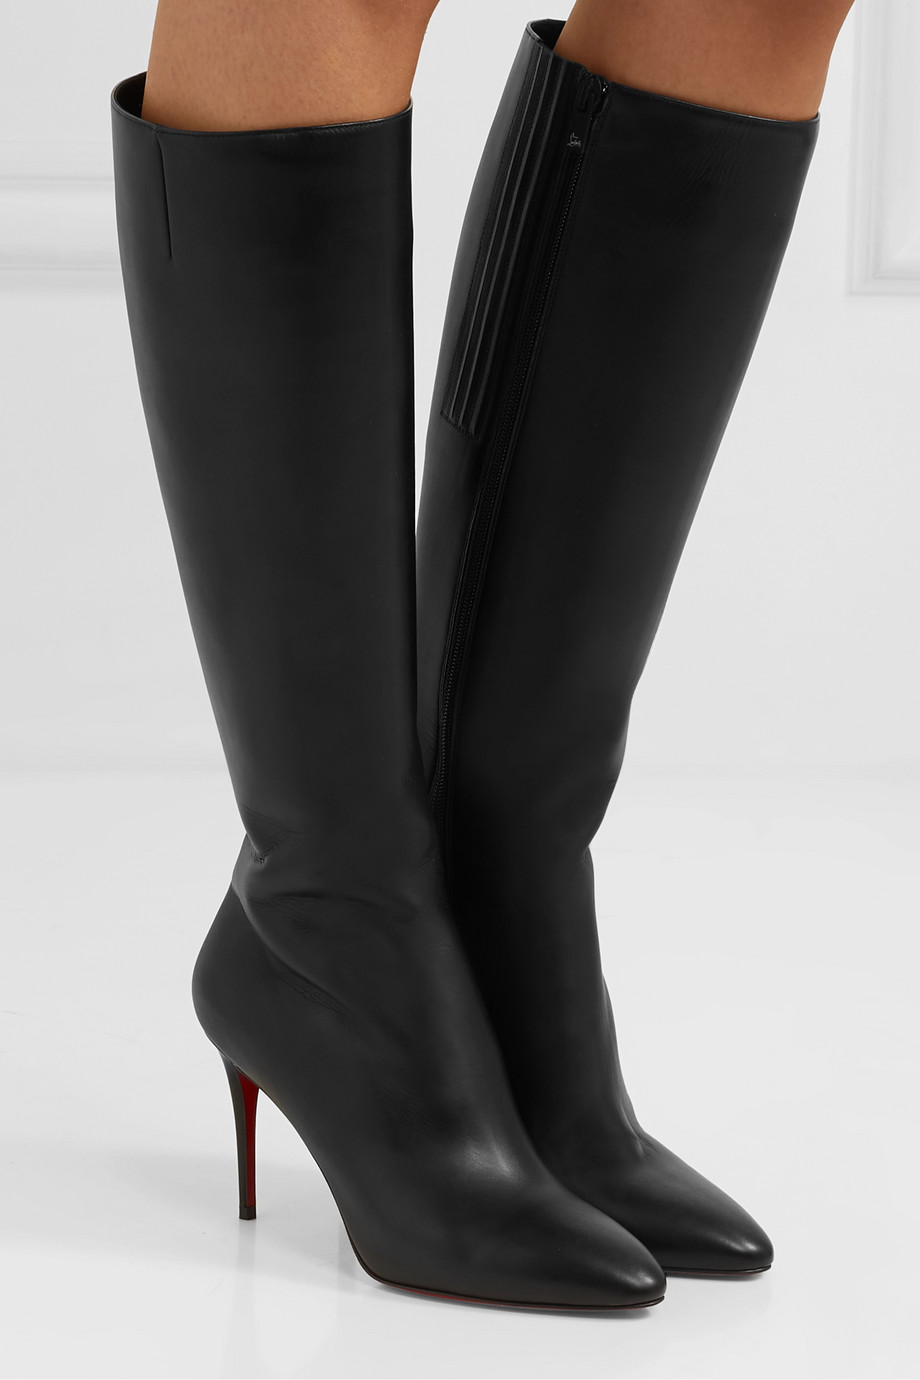 Christian Louboutin Eloise 85 leather knee boots